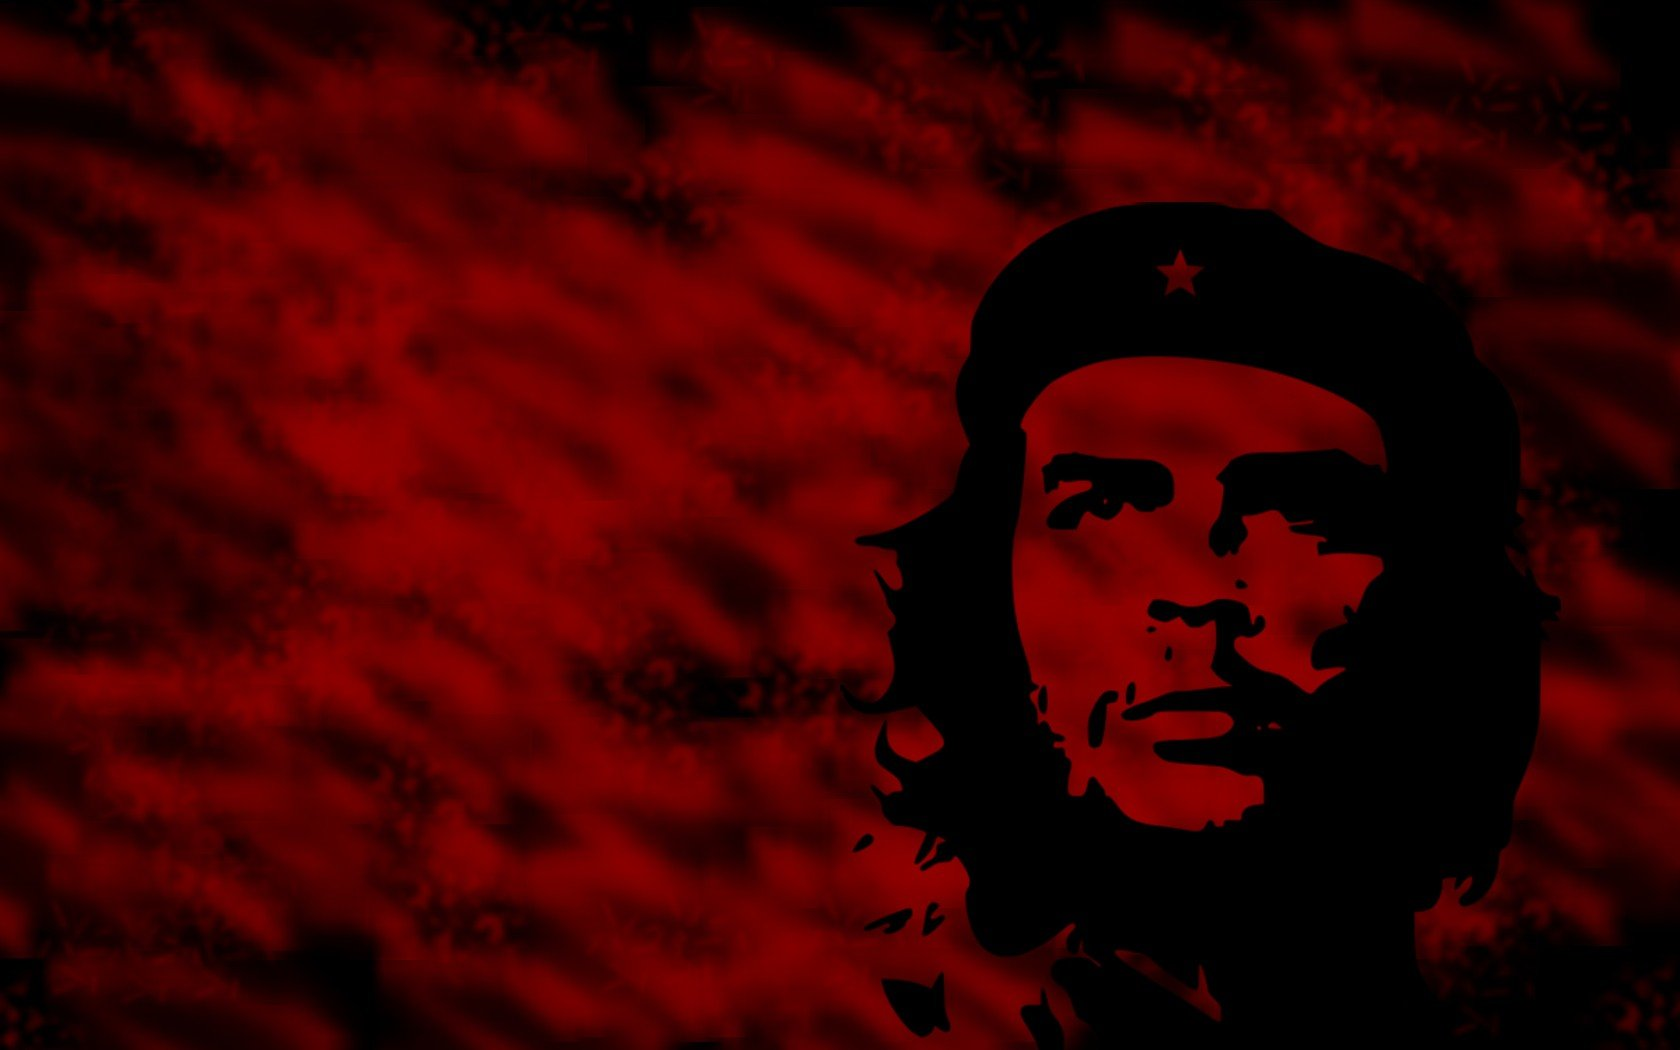 che guevara artwork wallpaper 1680x1050 335649